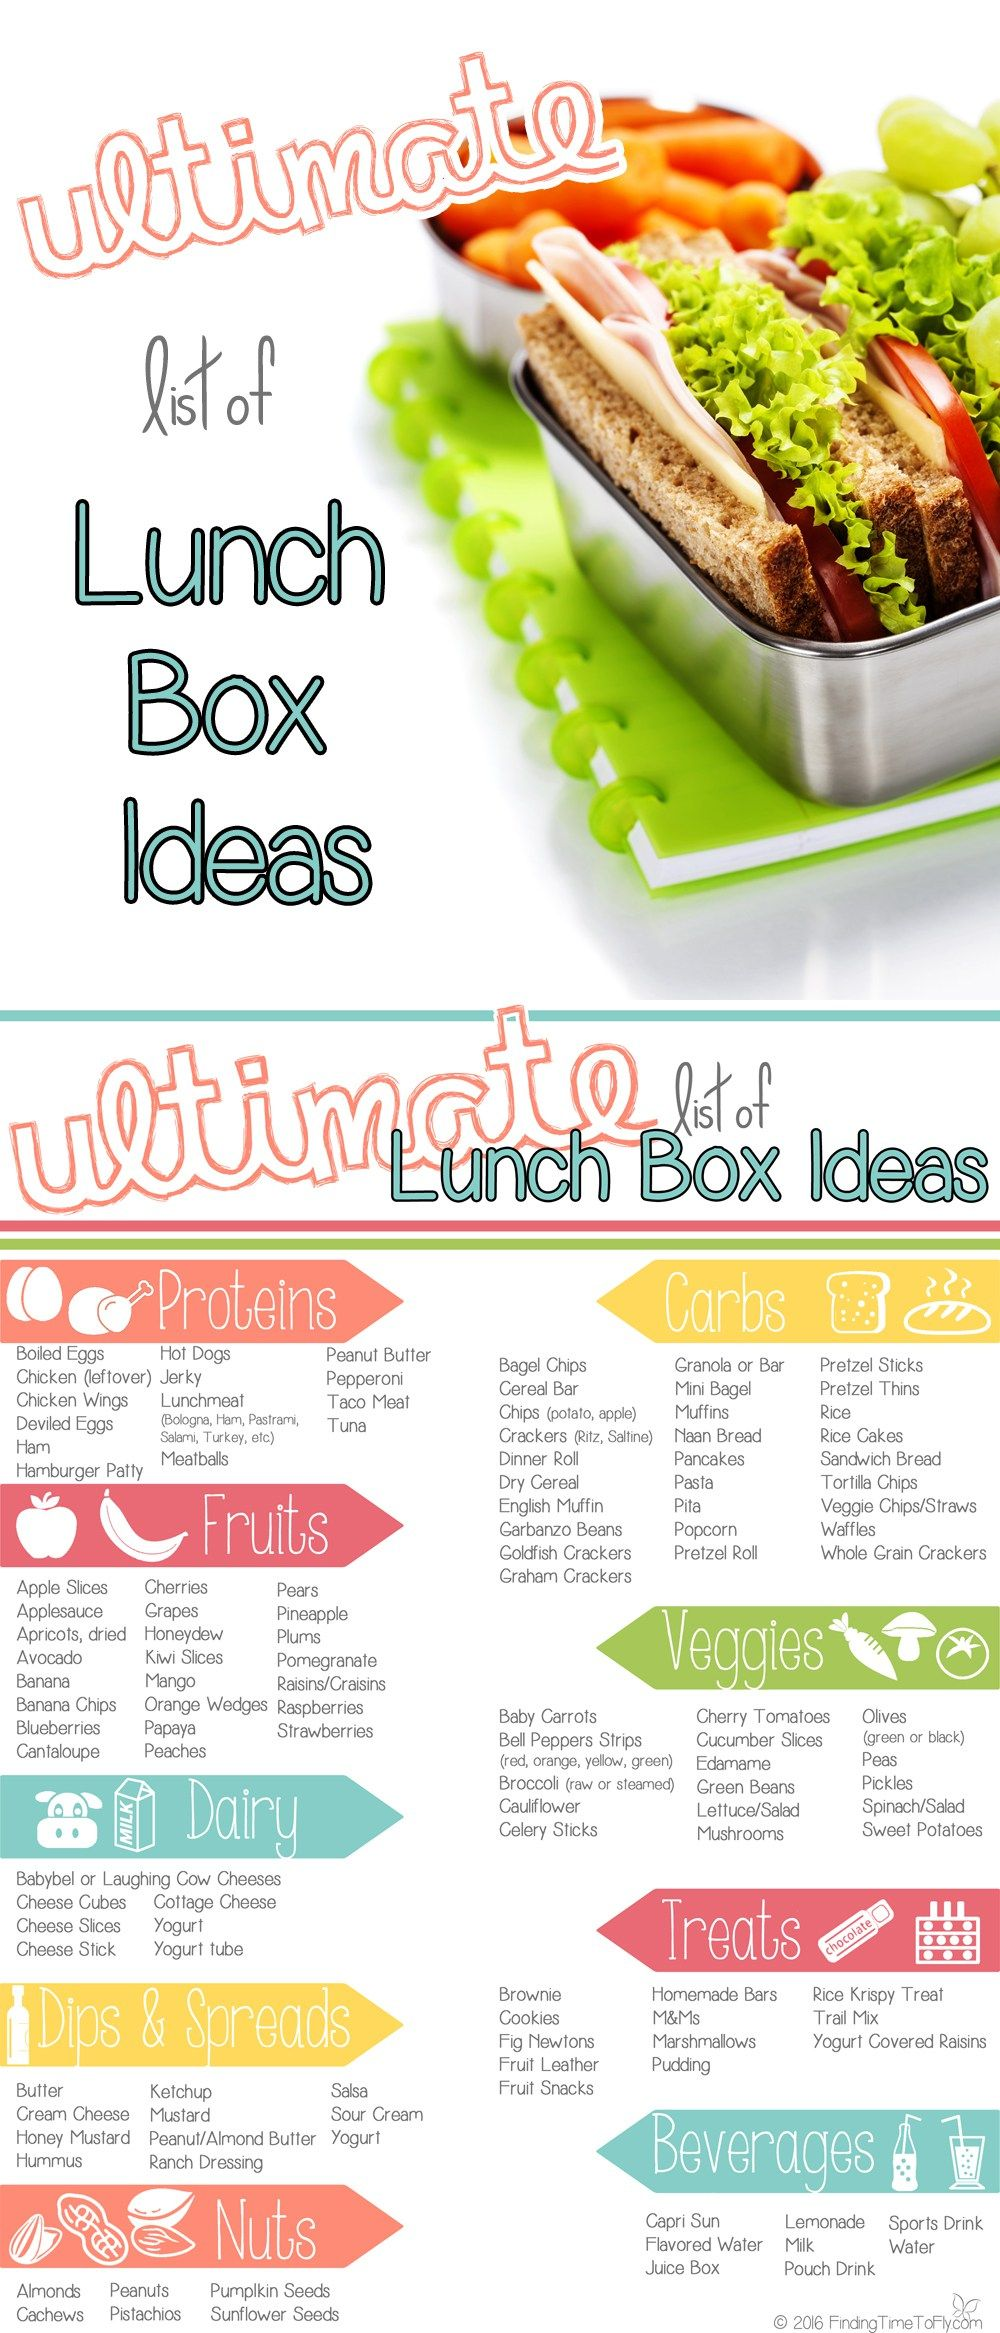 Ultimate List of Lunch Box Ideas | Pinterest | Lunch box ideas ...